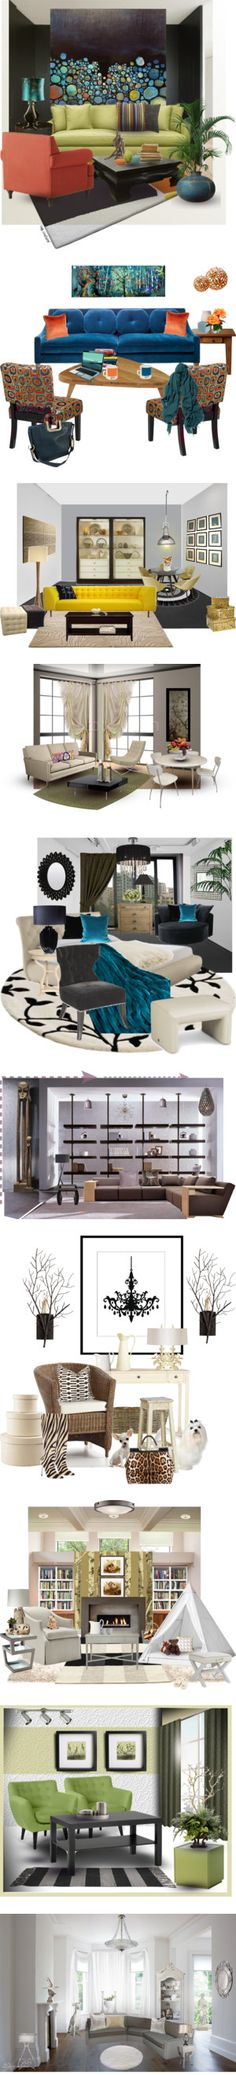 """Top Interior Design Sets for Oct 25th, 2012"" by polyvore ❤ liked on Polyvore"